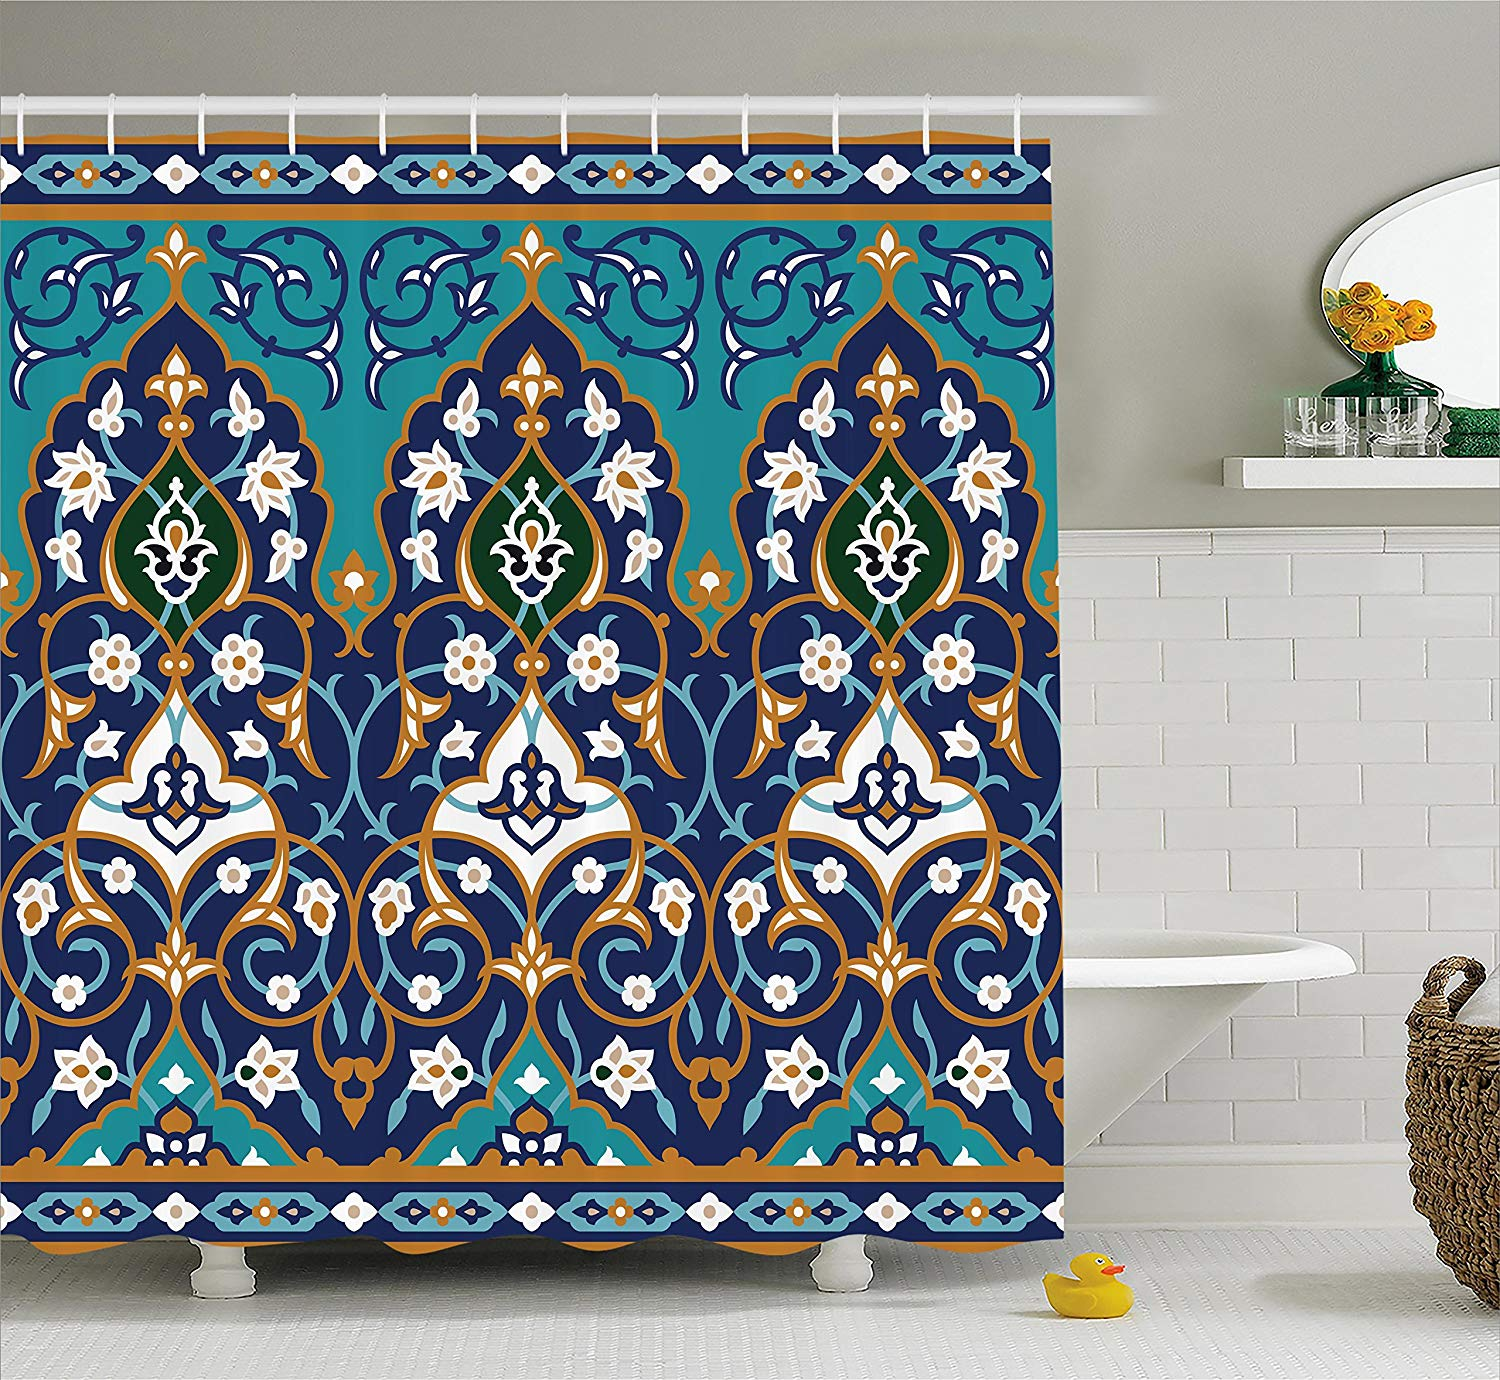 Ambesonne Moroccan Shower Curtain, Ottoman Folkloric Art Inspired Abstract Aged Middle Age Renaissance Artful Print, Fabric Bathroom Decor Set with Hooks, 75 Inches Long, Navy Blue